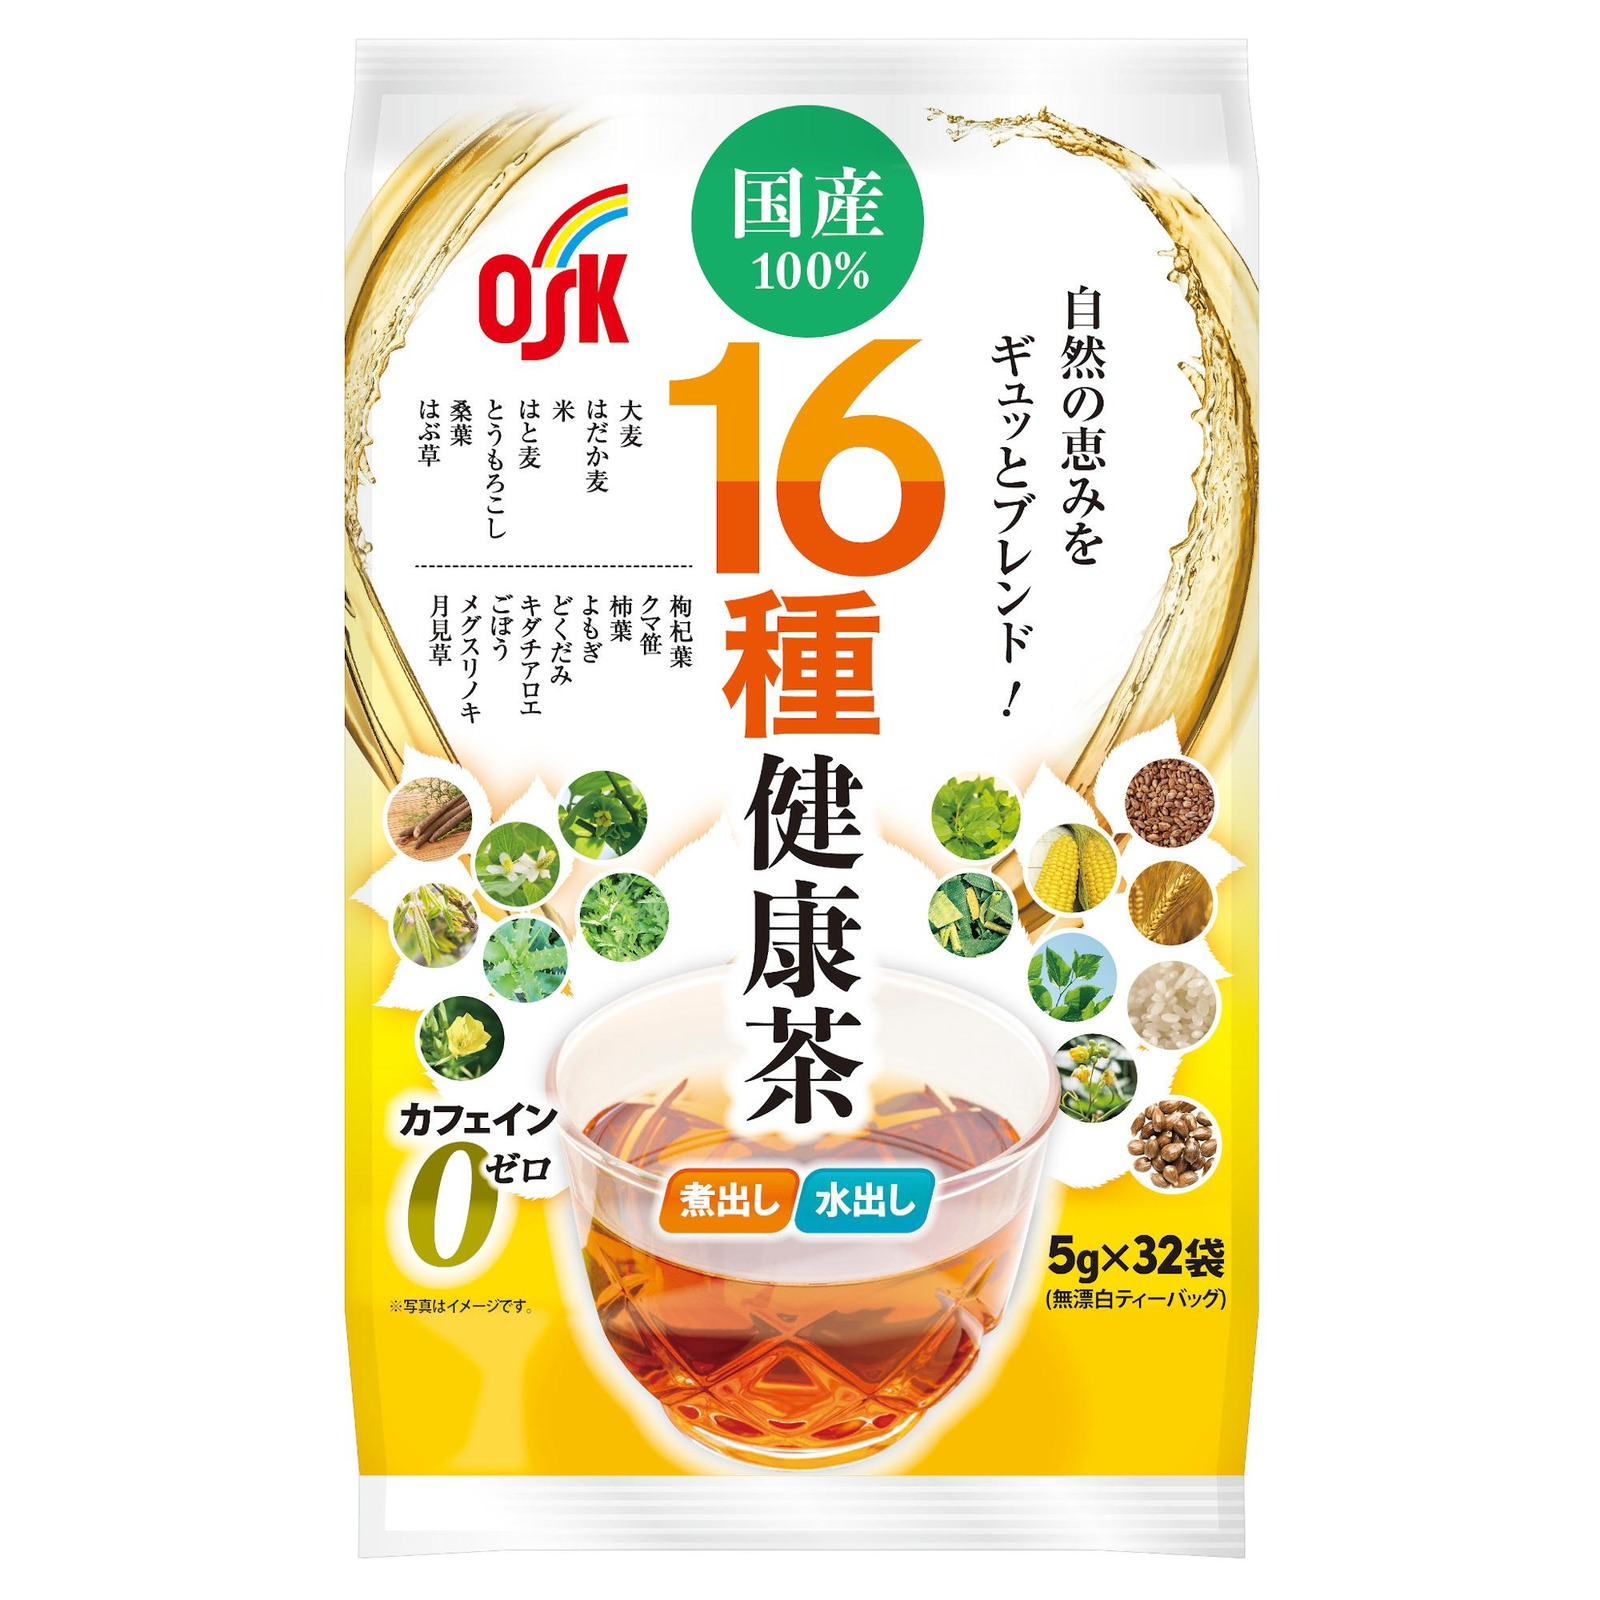 OSK JAPANESE 16 BLENDED HEALTHY TEA